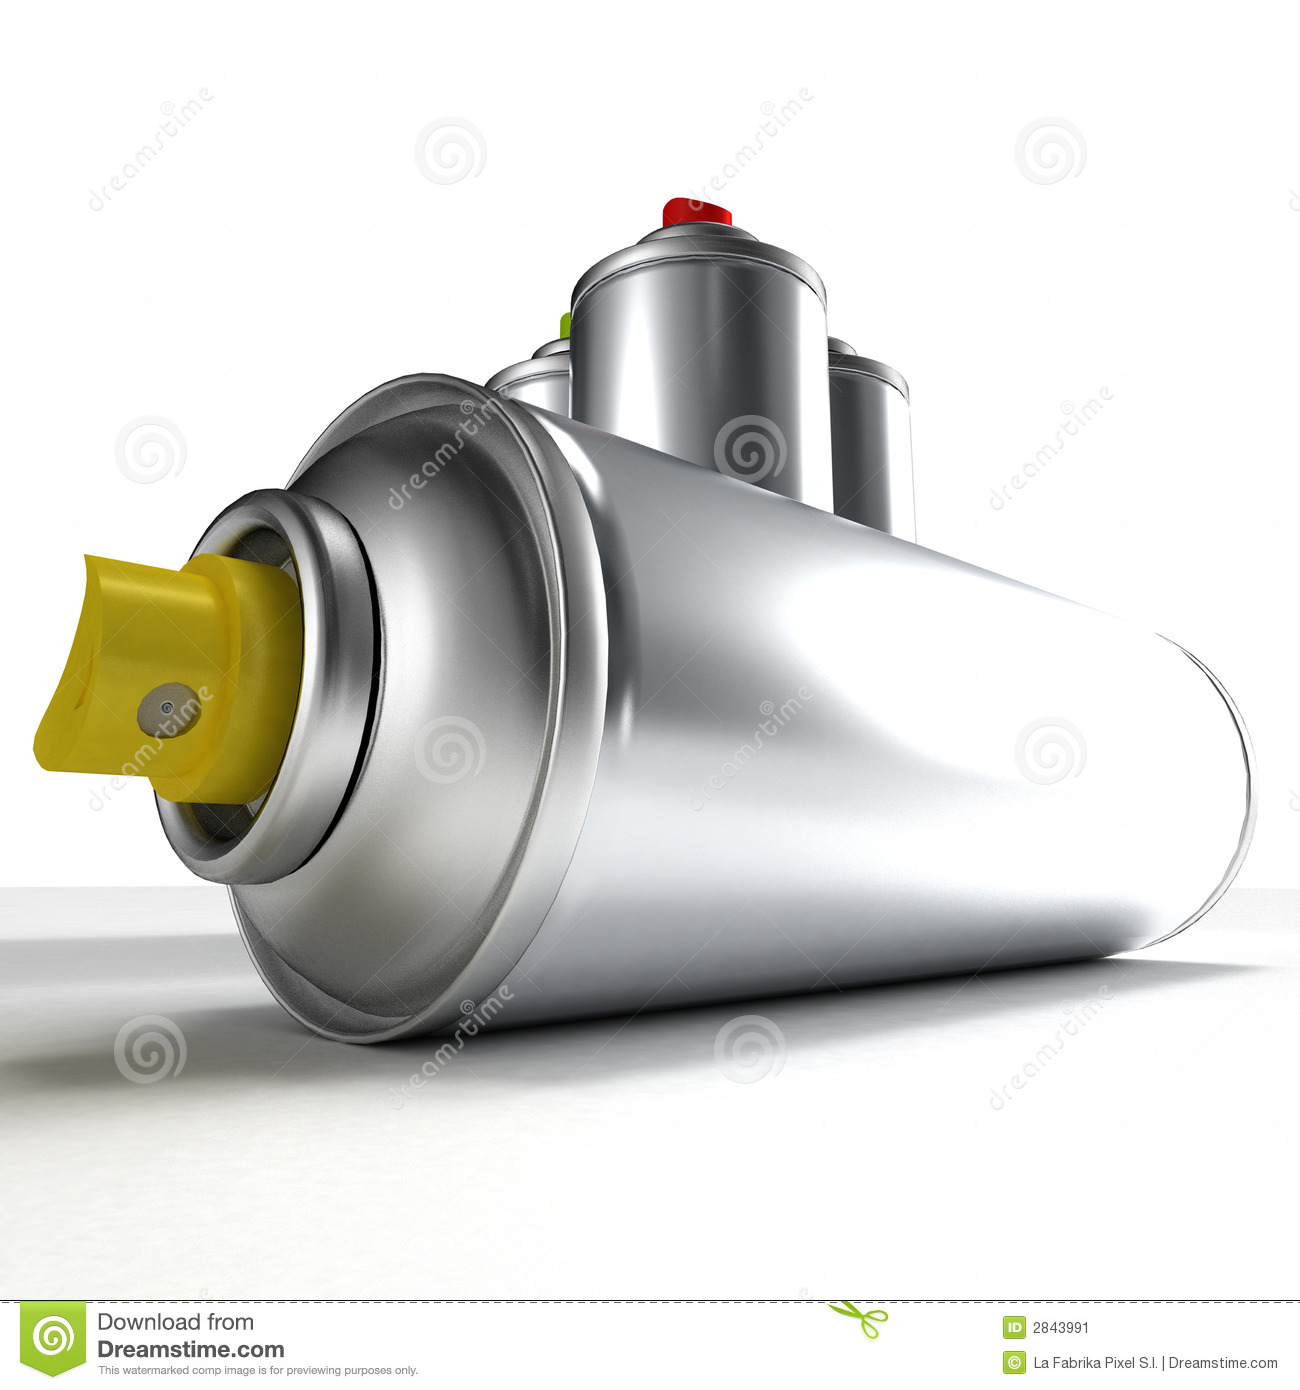 United Baggage Prices Aerosol Spray Cans Stock Image Image 2843991